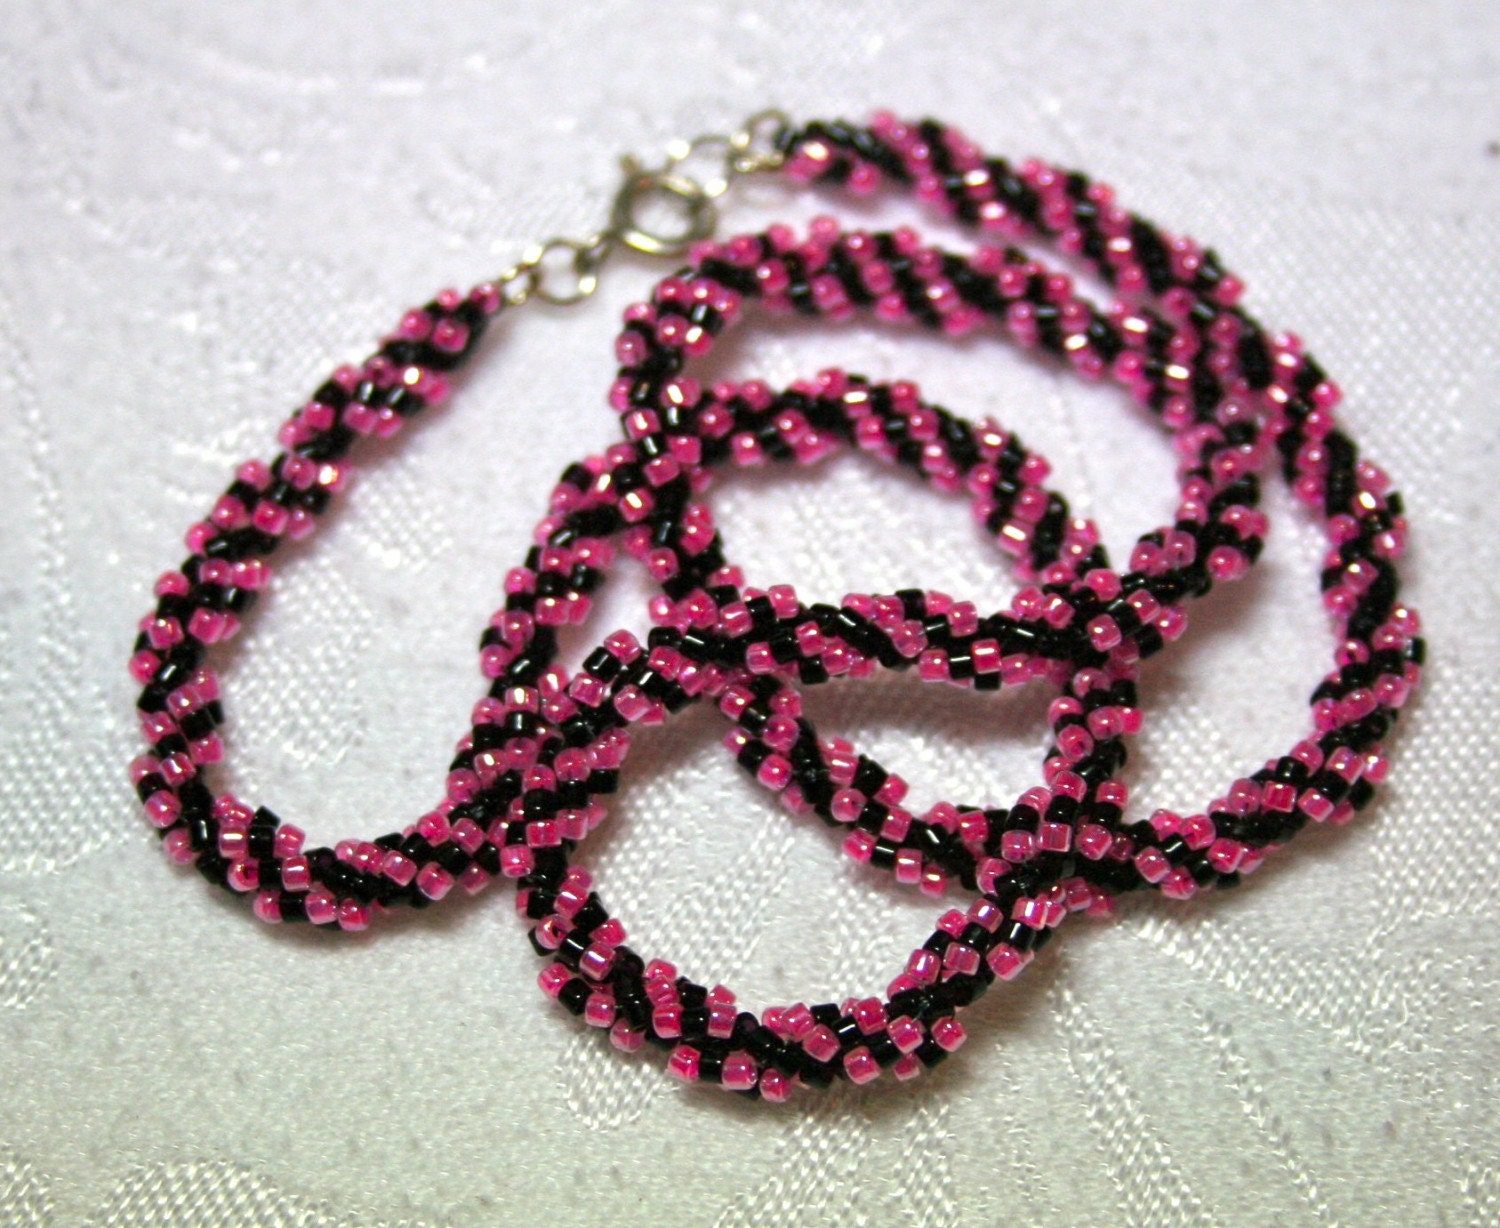 Pink and Black Spiral Beadwoven Choker Necklace